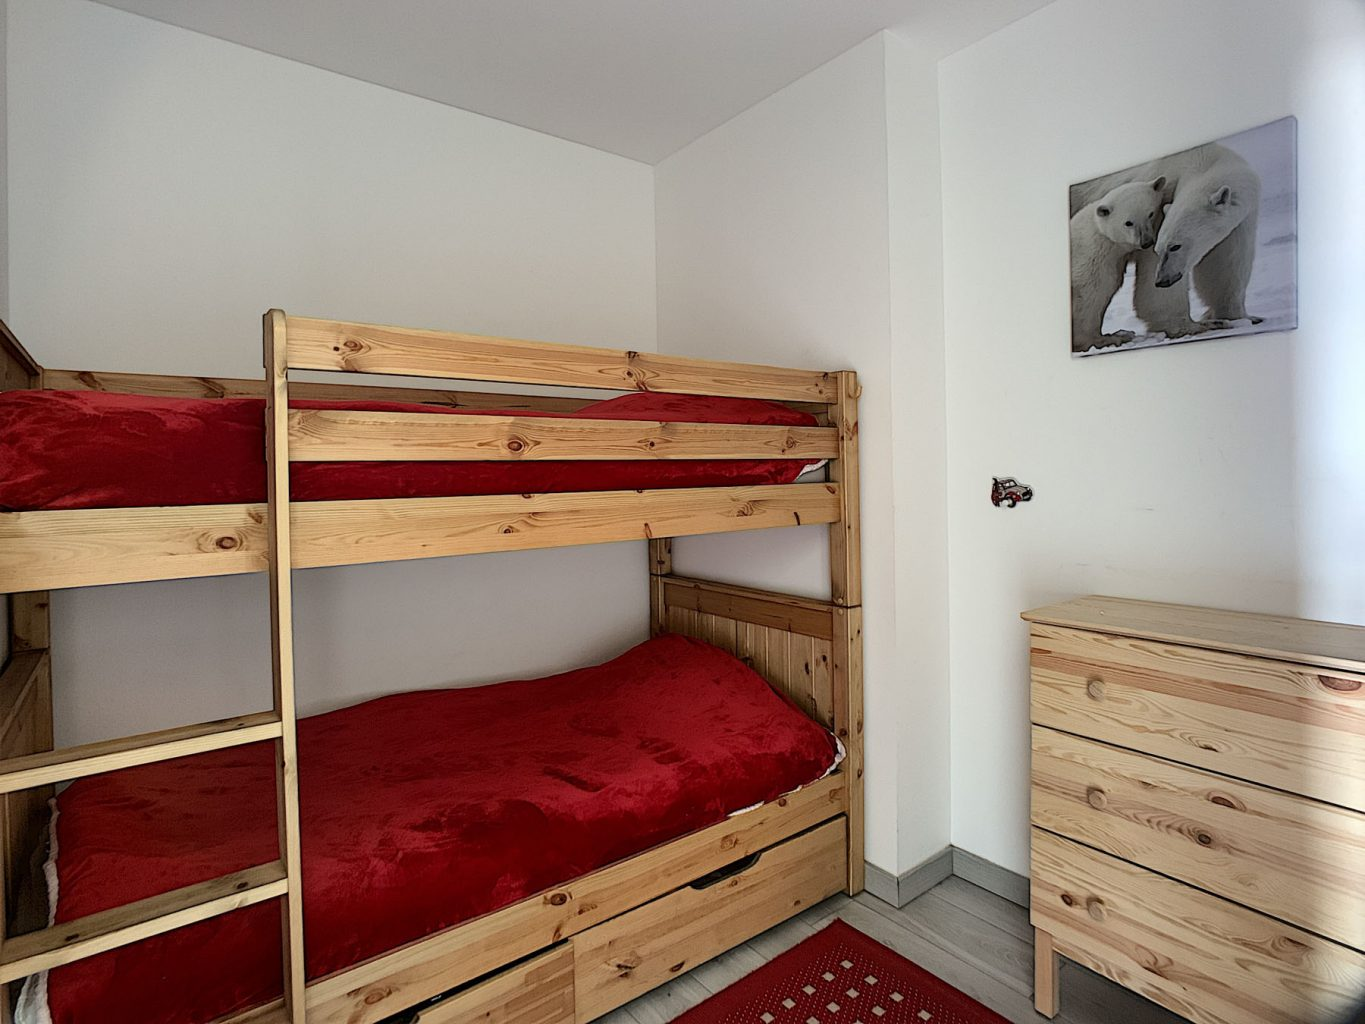 Morzine PDLP Appt 1050 Bunk Room